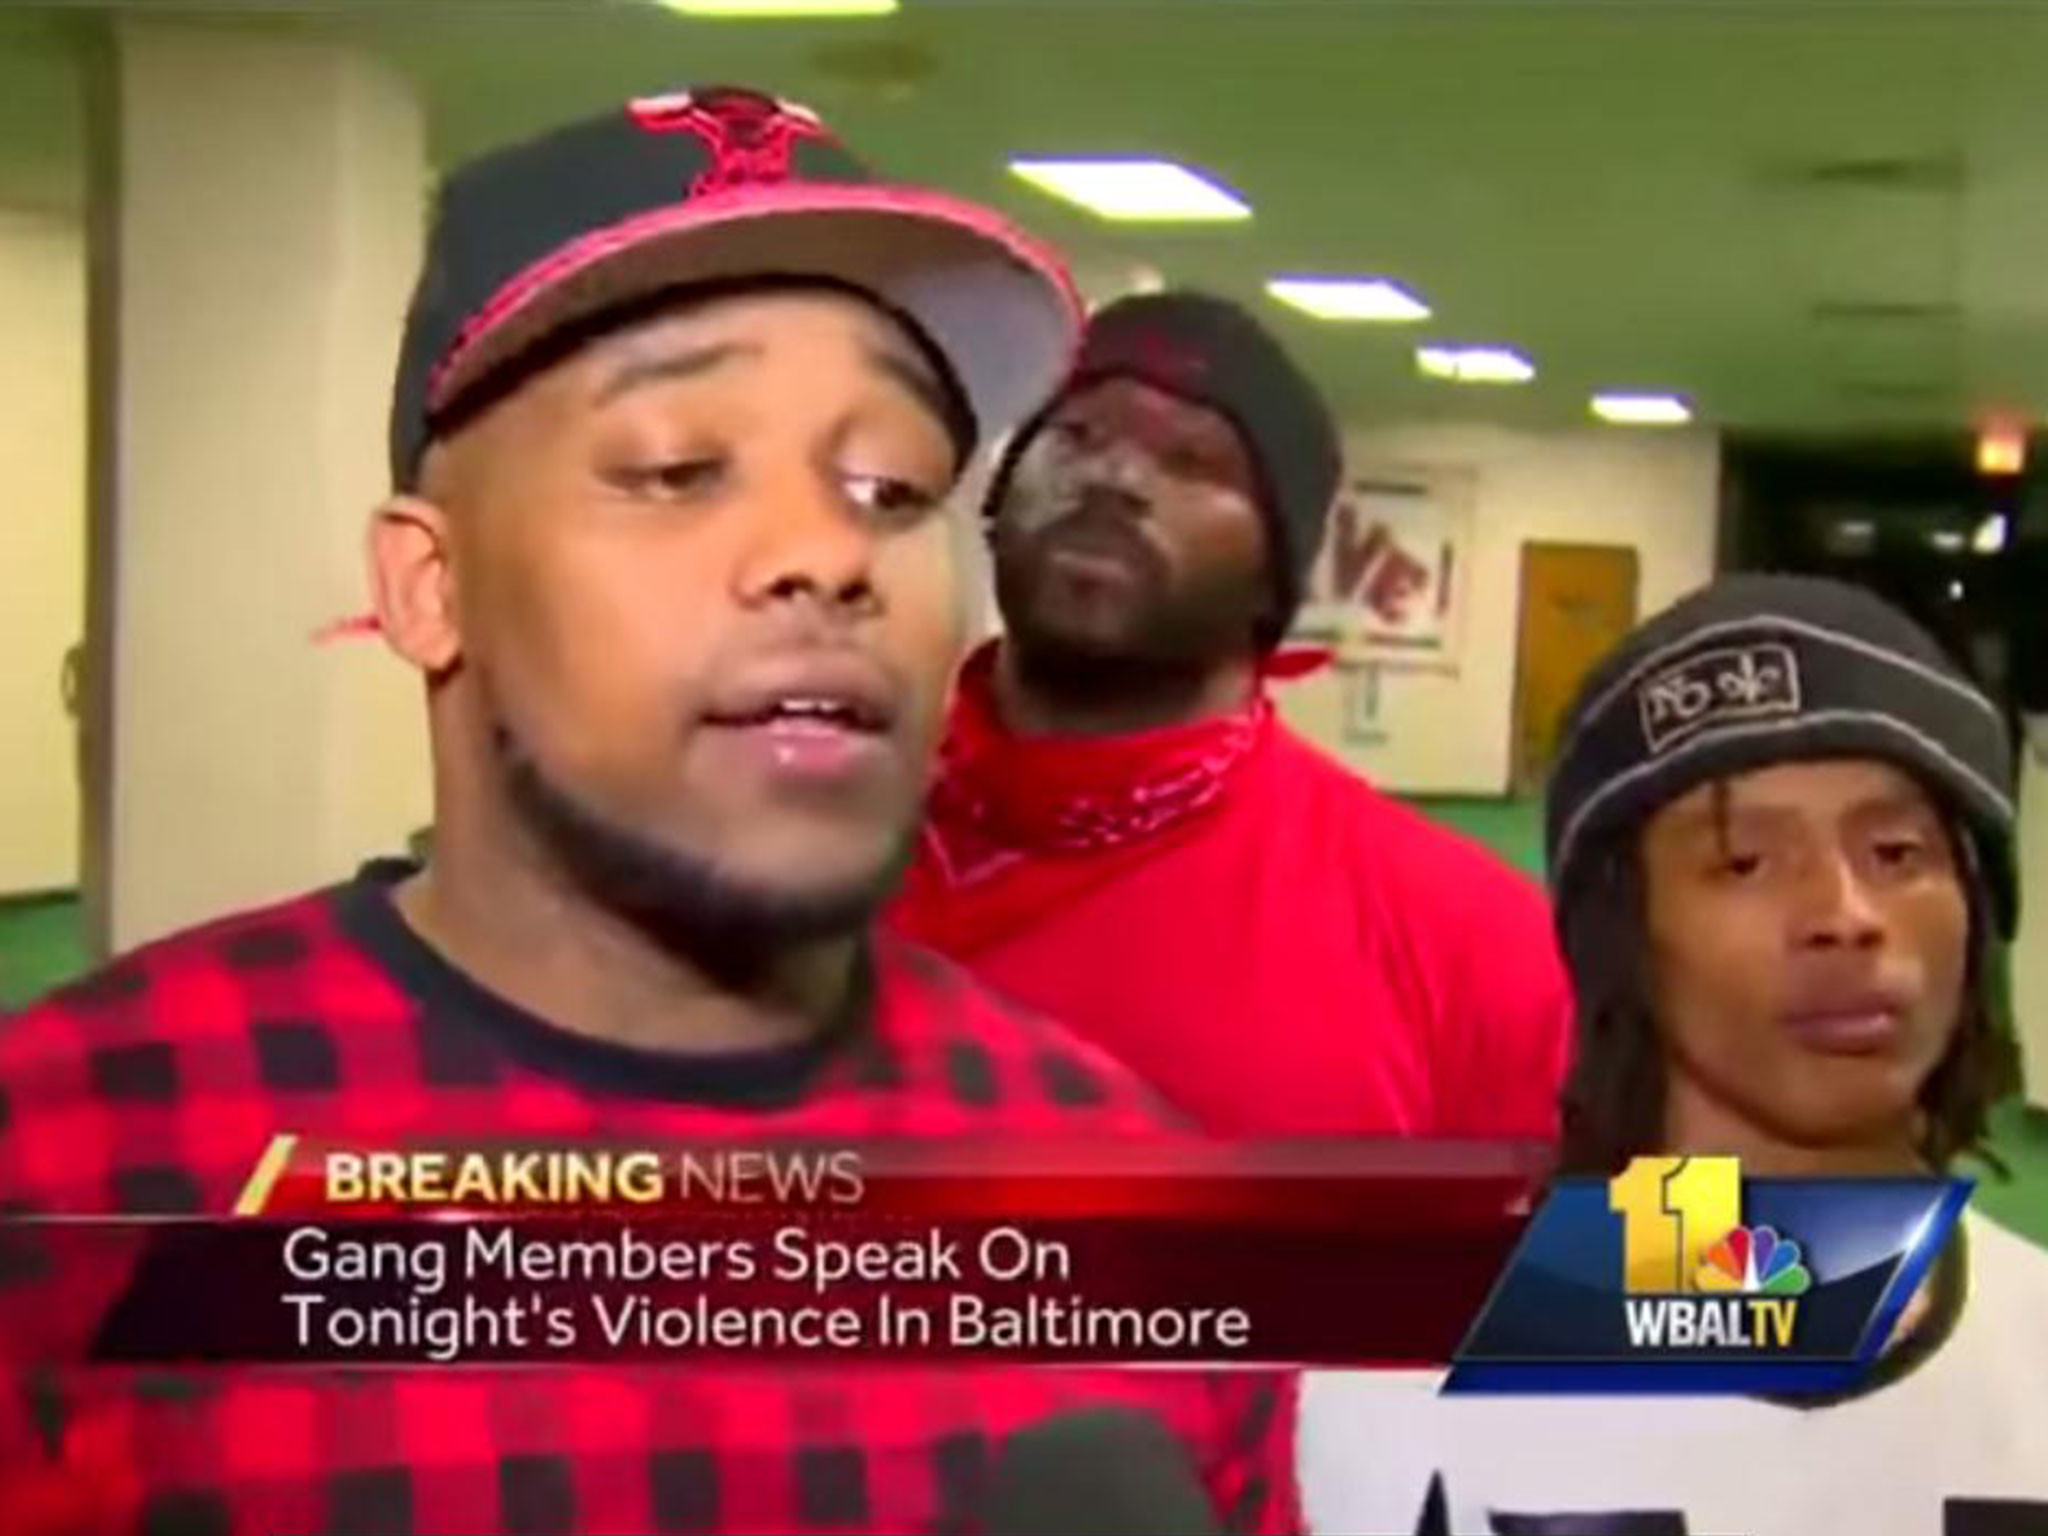 Baltimore riots: Bloods and Crips deny uniting to 'take-out' local police  officers | The Independent